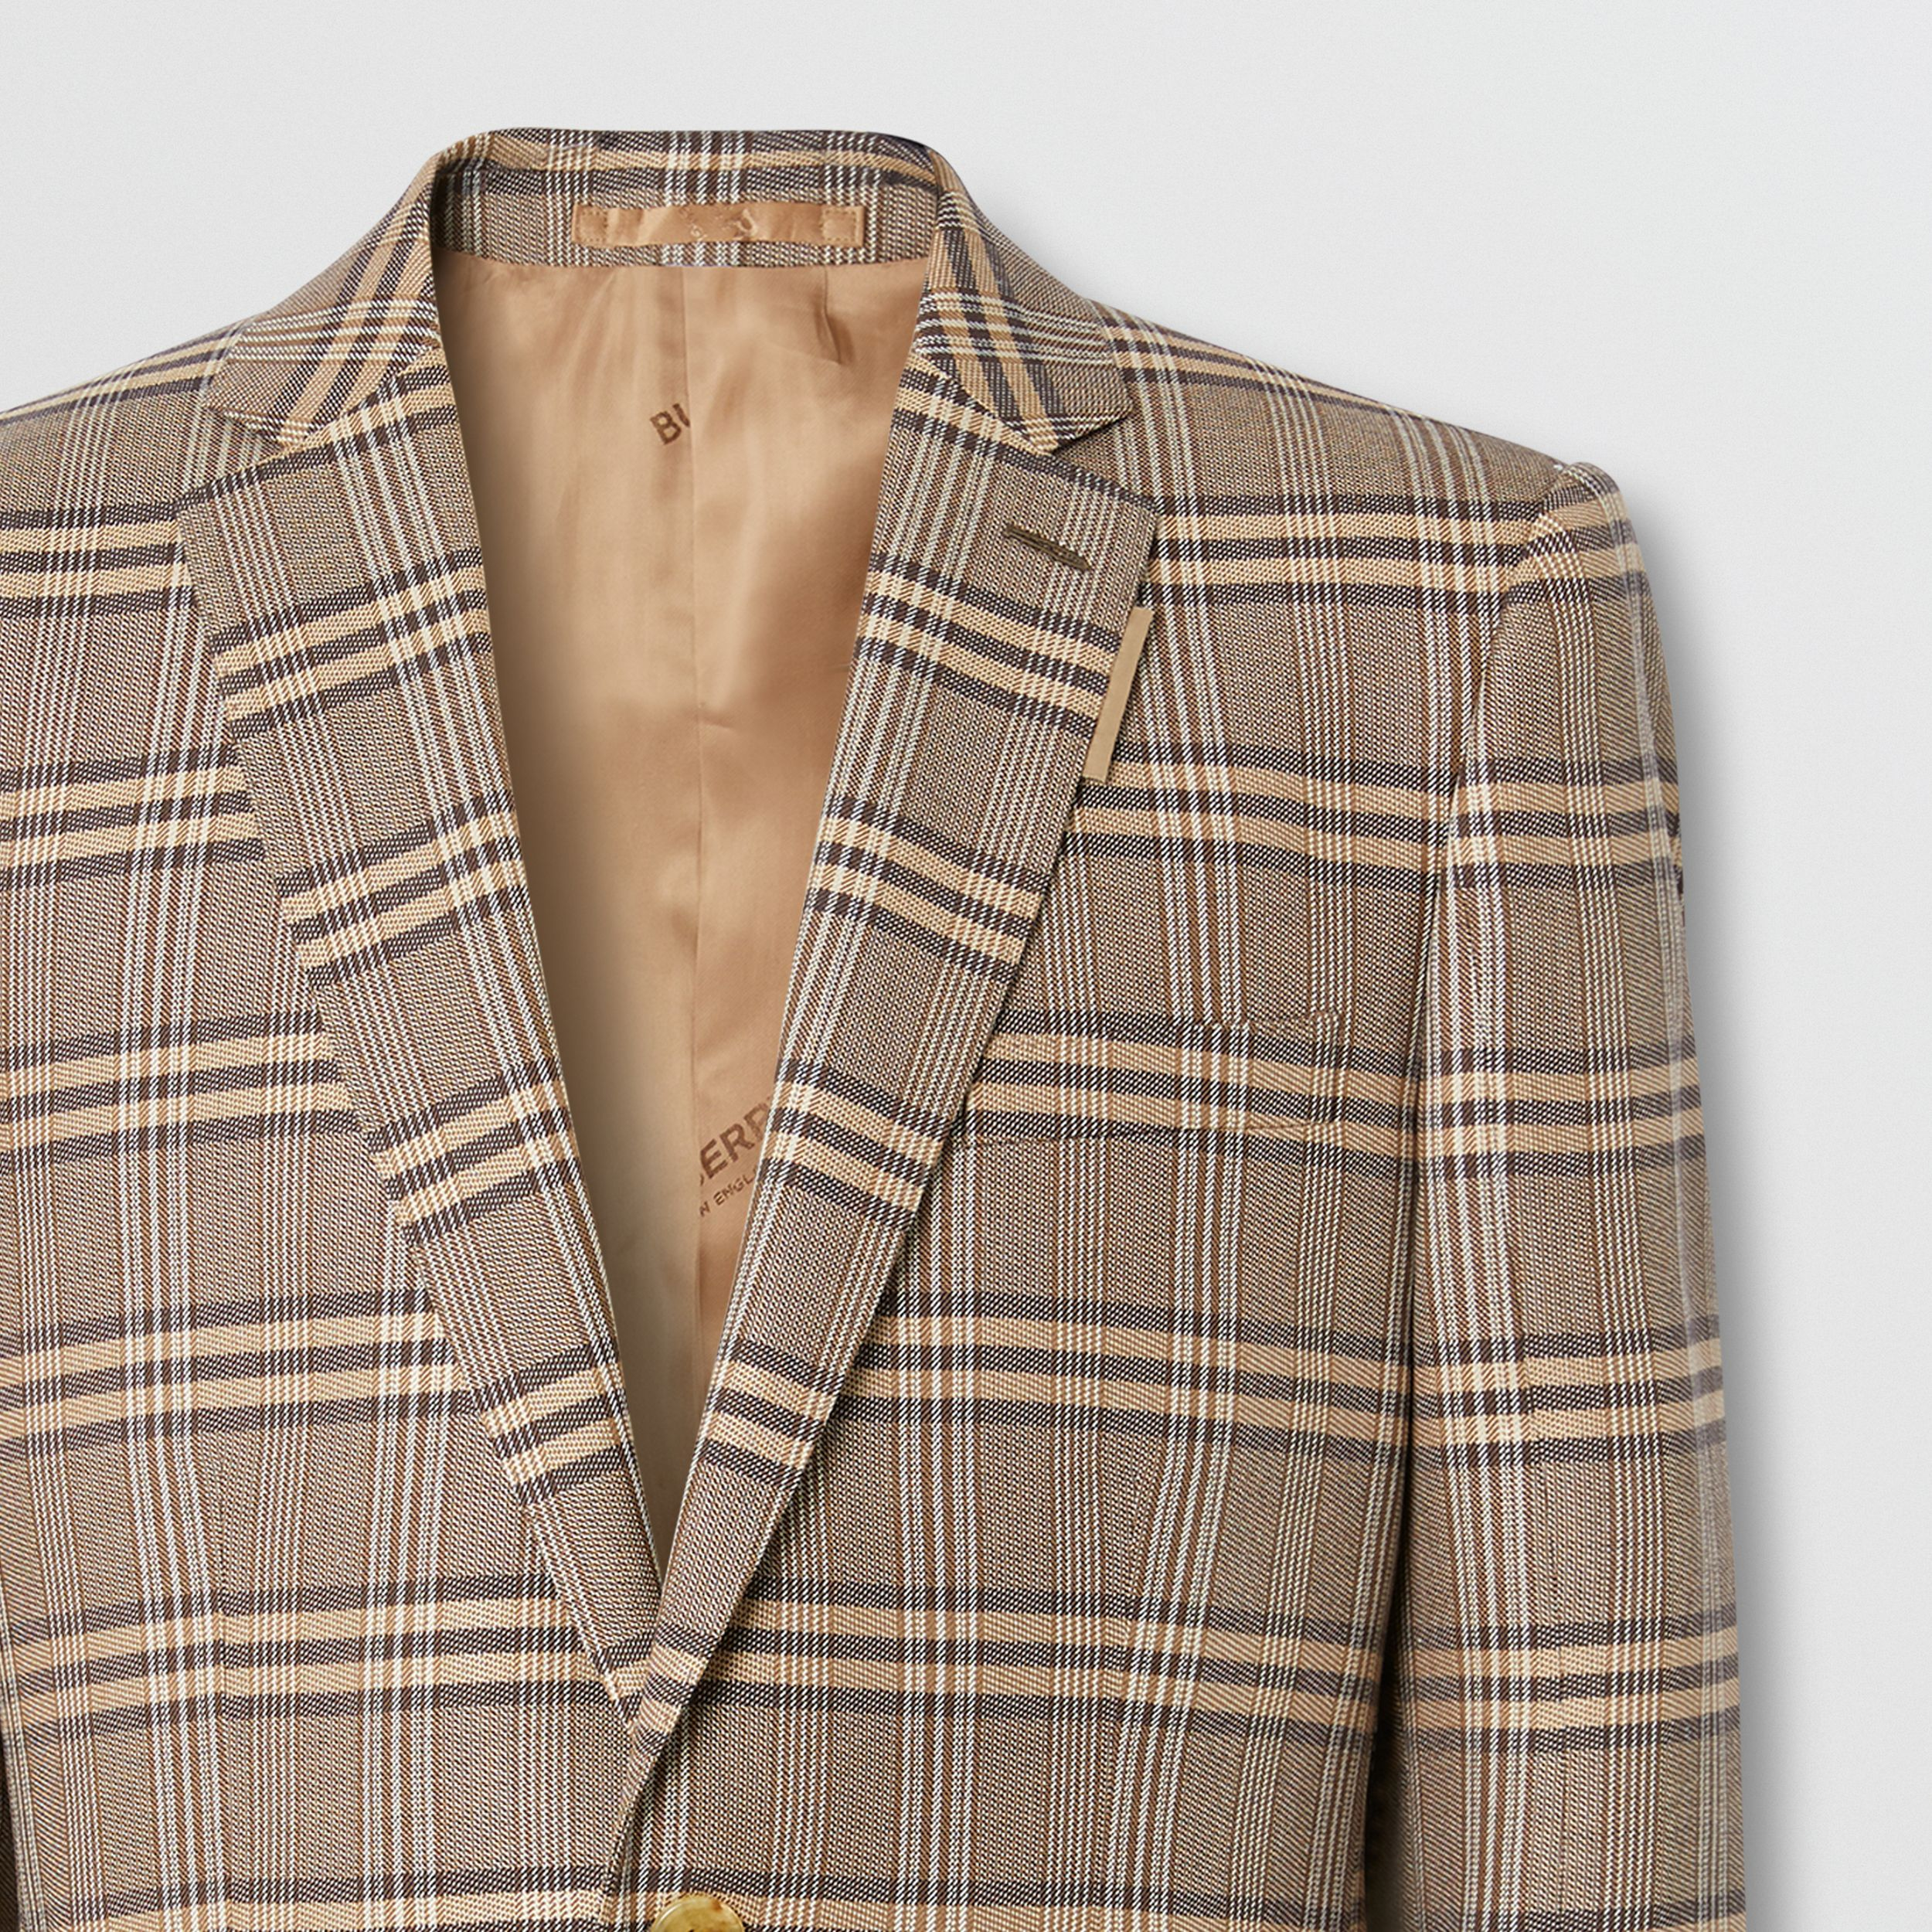 Prince of Wales Check Wool Silk Tailored Jacket in Dusty Caramel | Burberry - 3